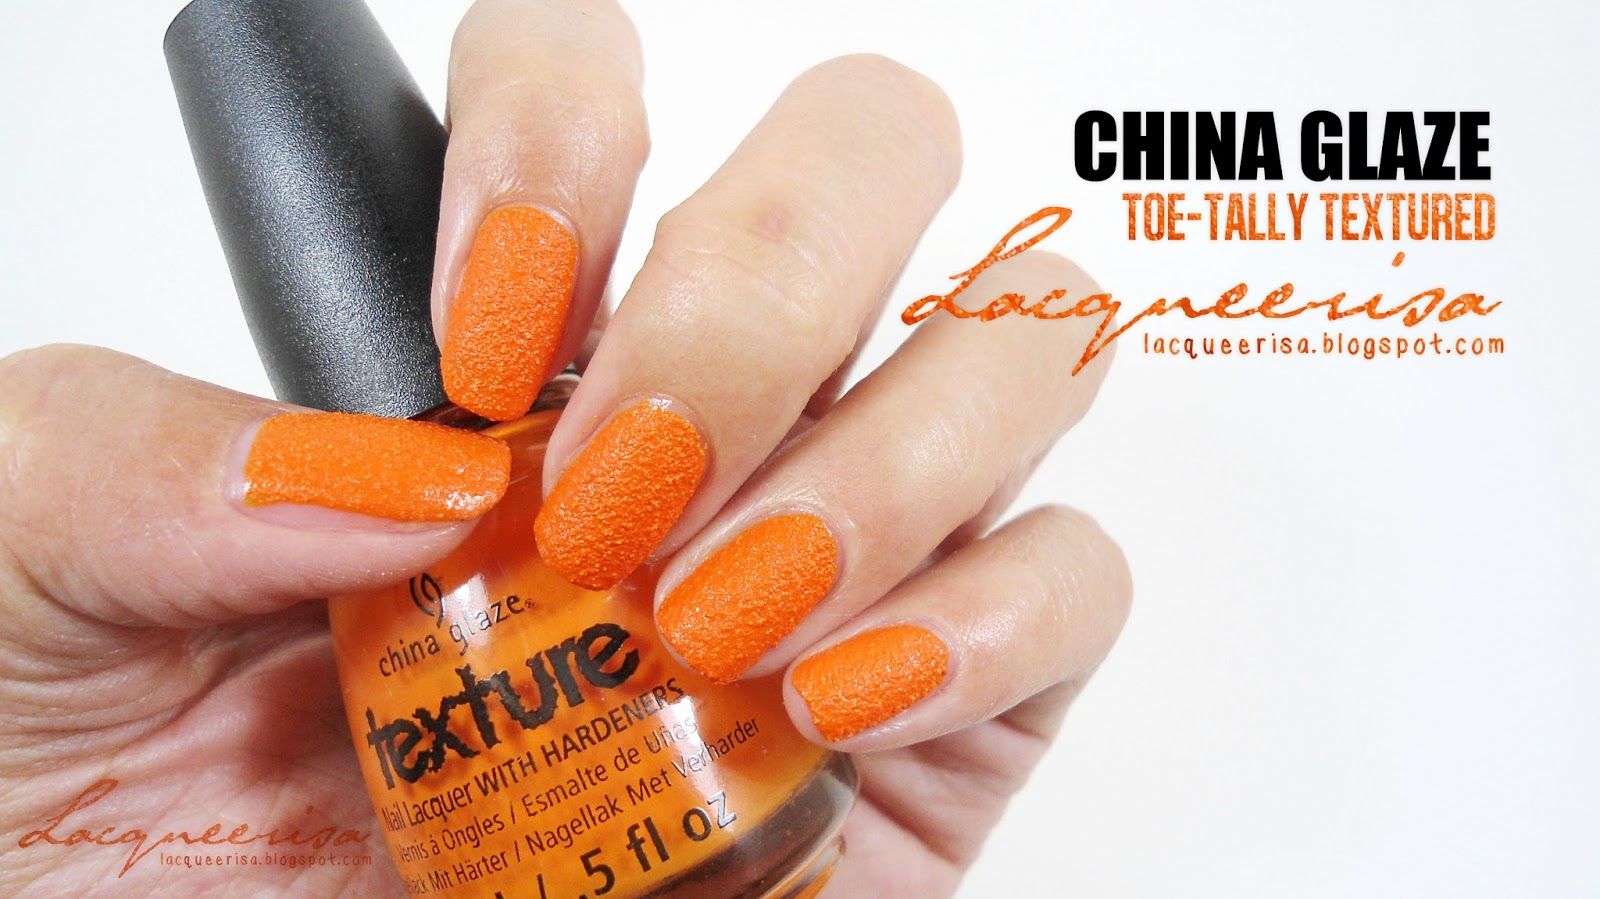 Lacqueerisa: China Glaze Toe-Tally Textured